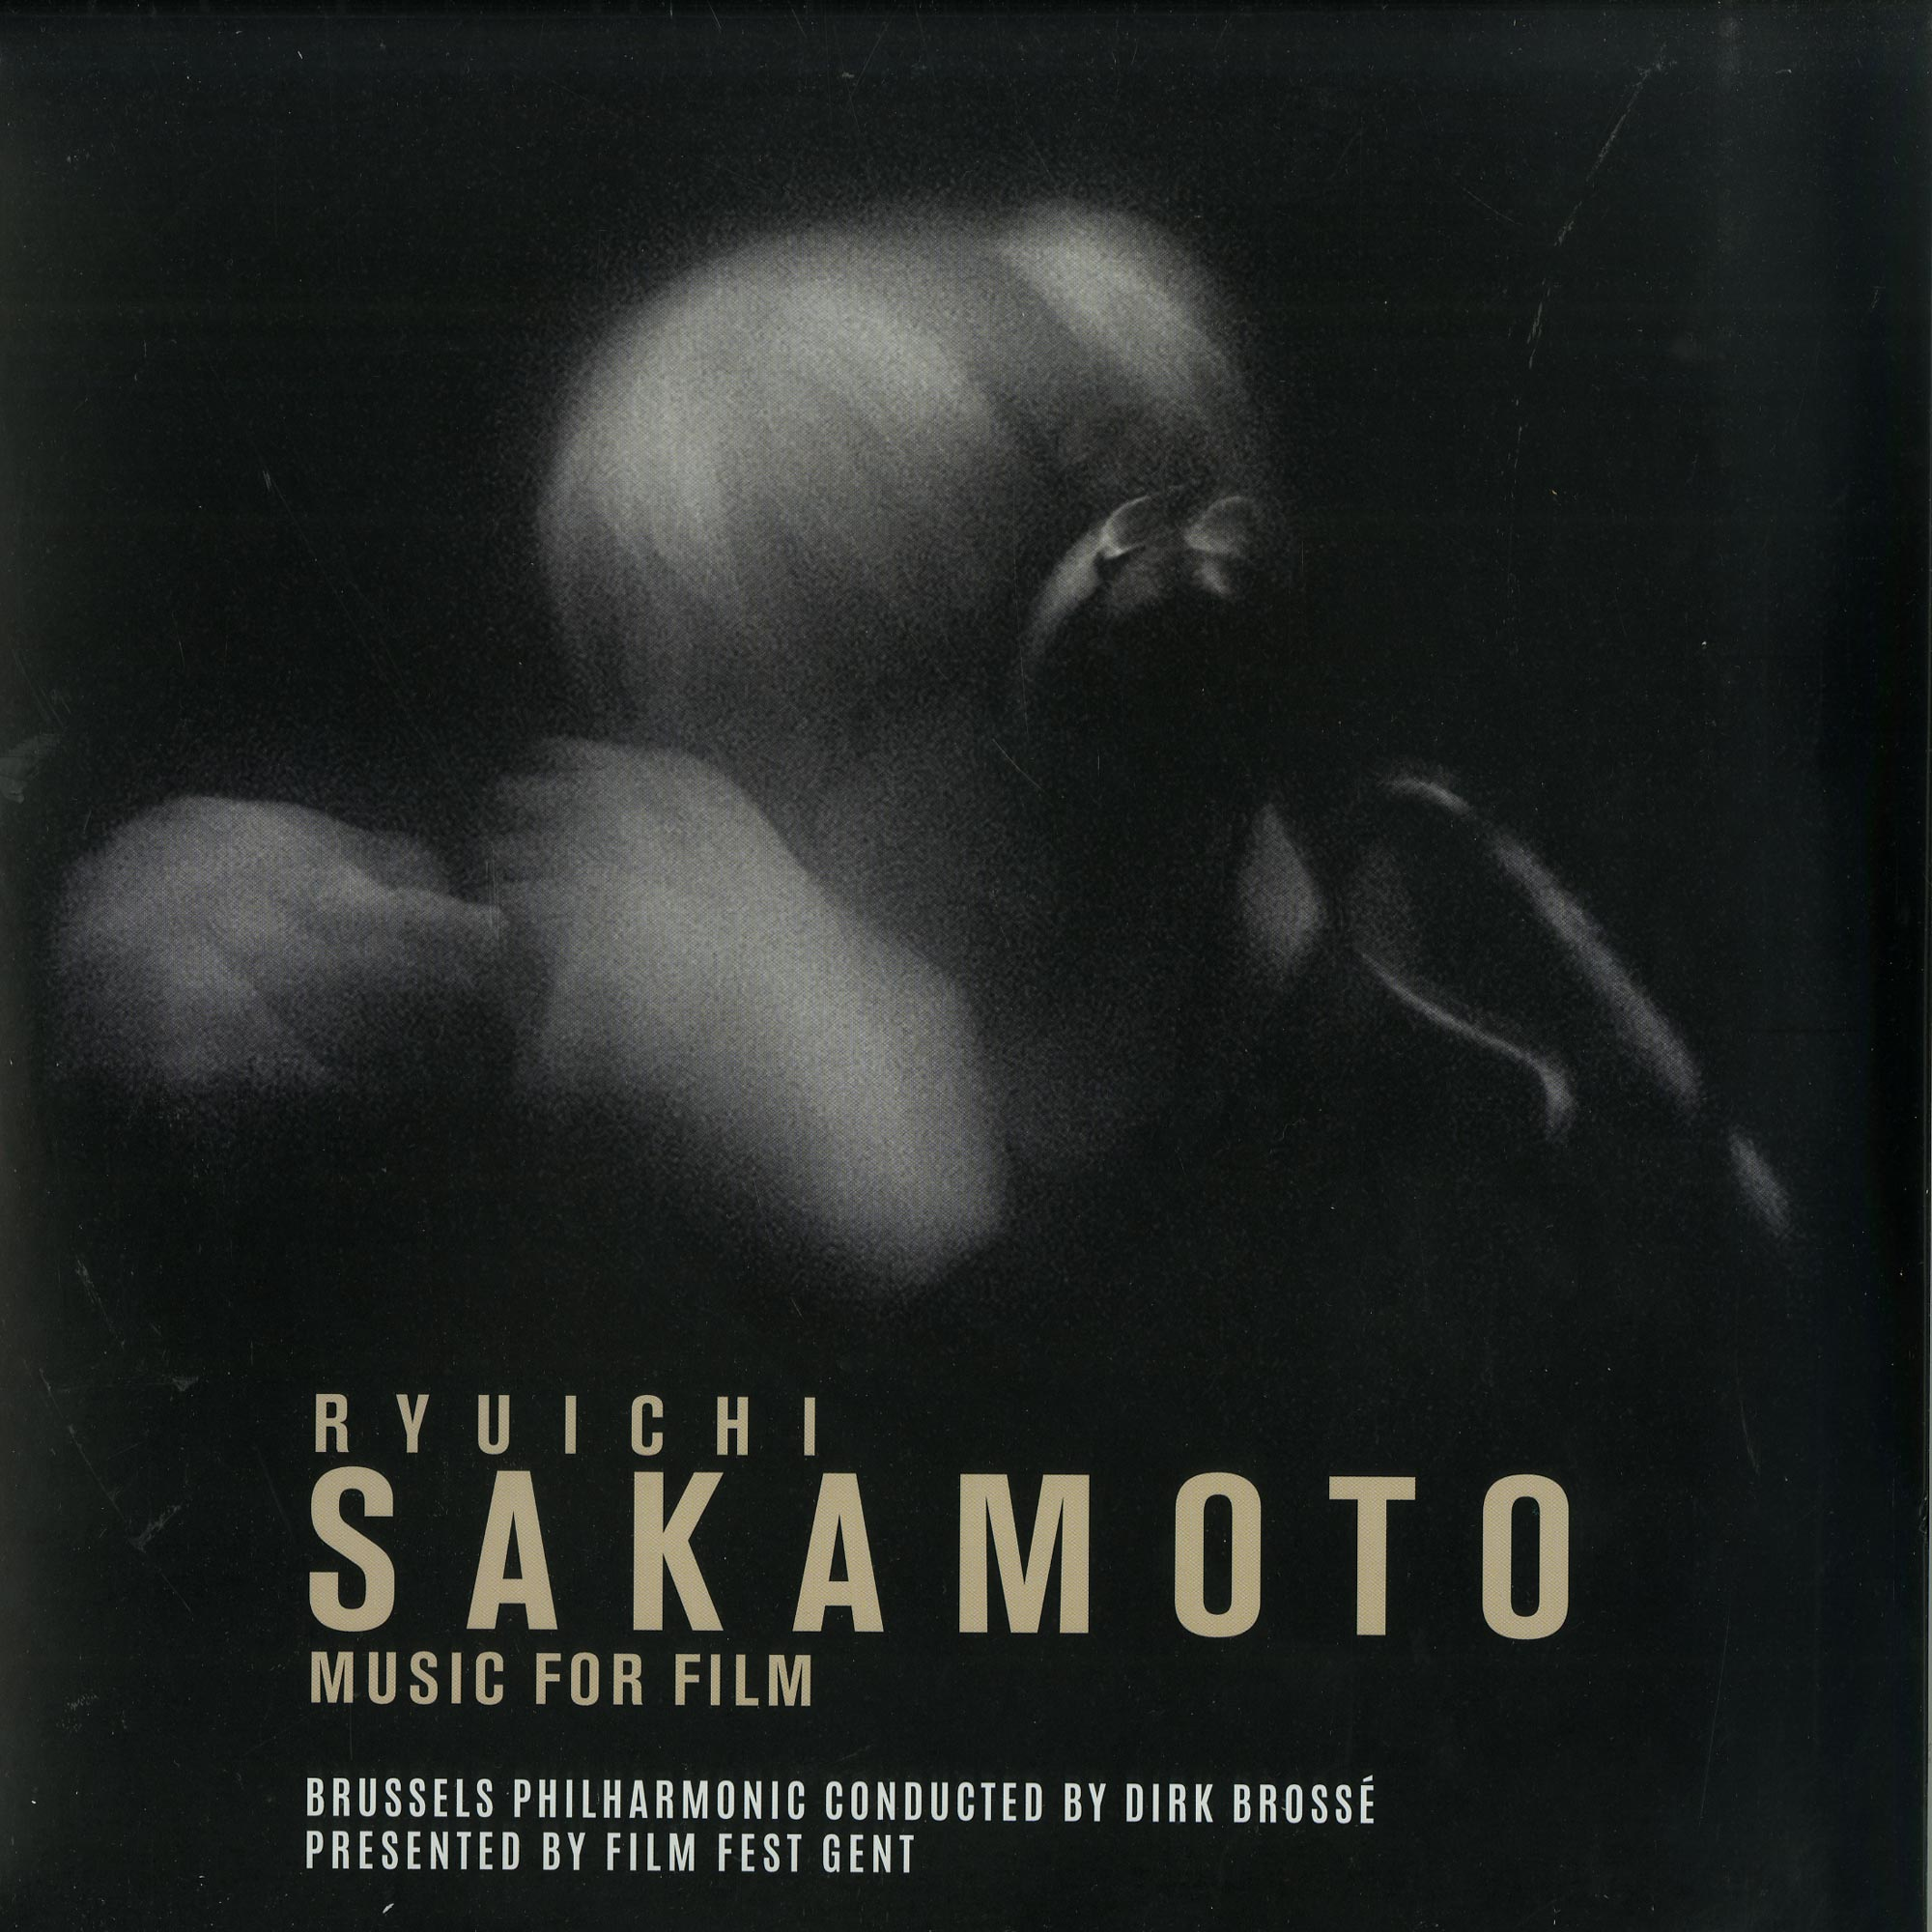 Brussels Philharmonic Conducted By Dirk Brosse - RYUICHI SAKAMOTO, MUSIC FOR FILM